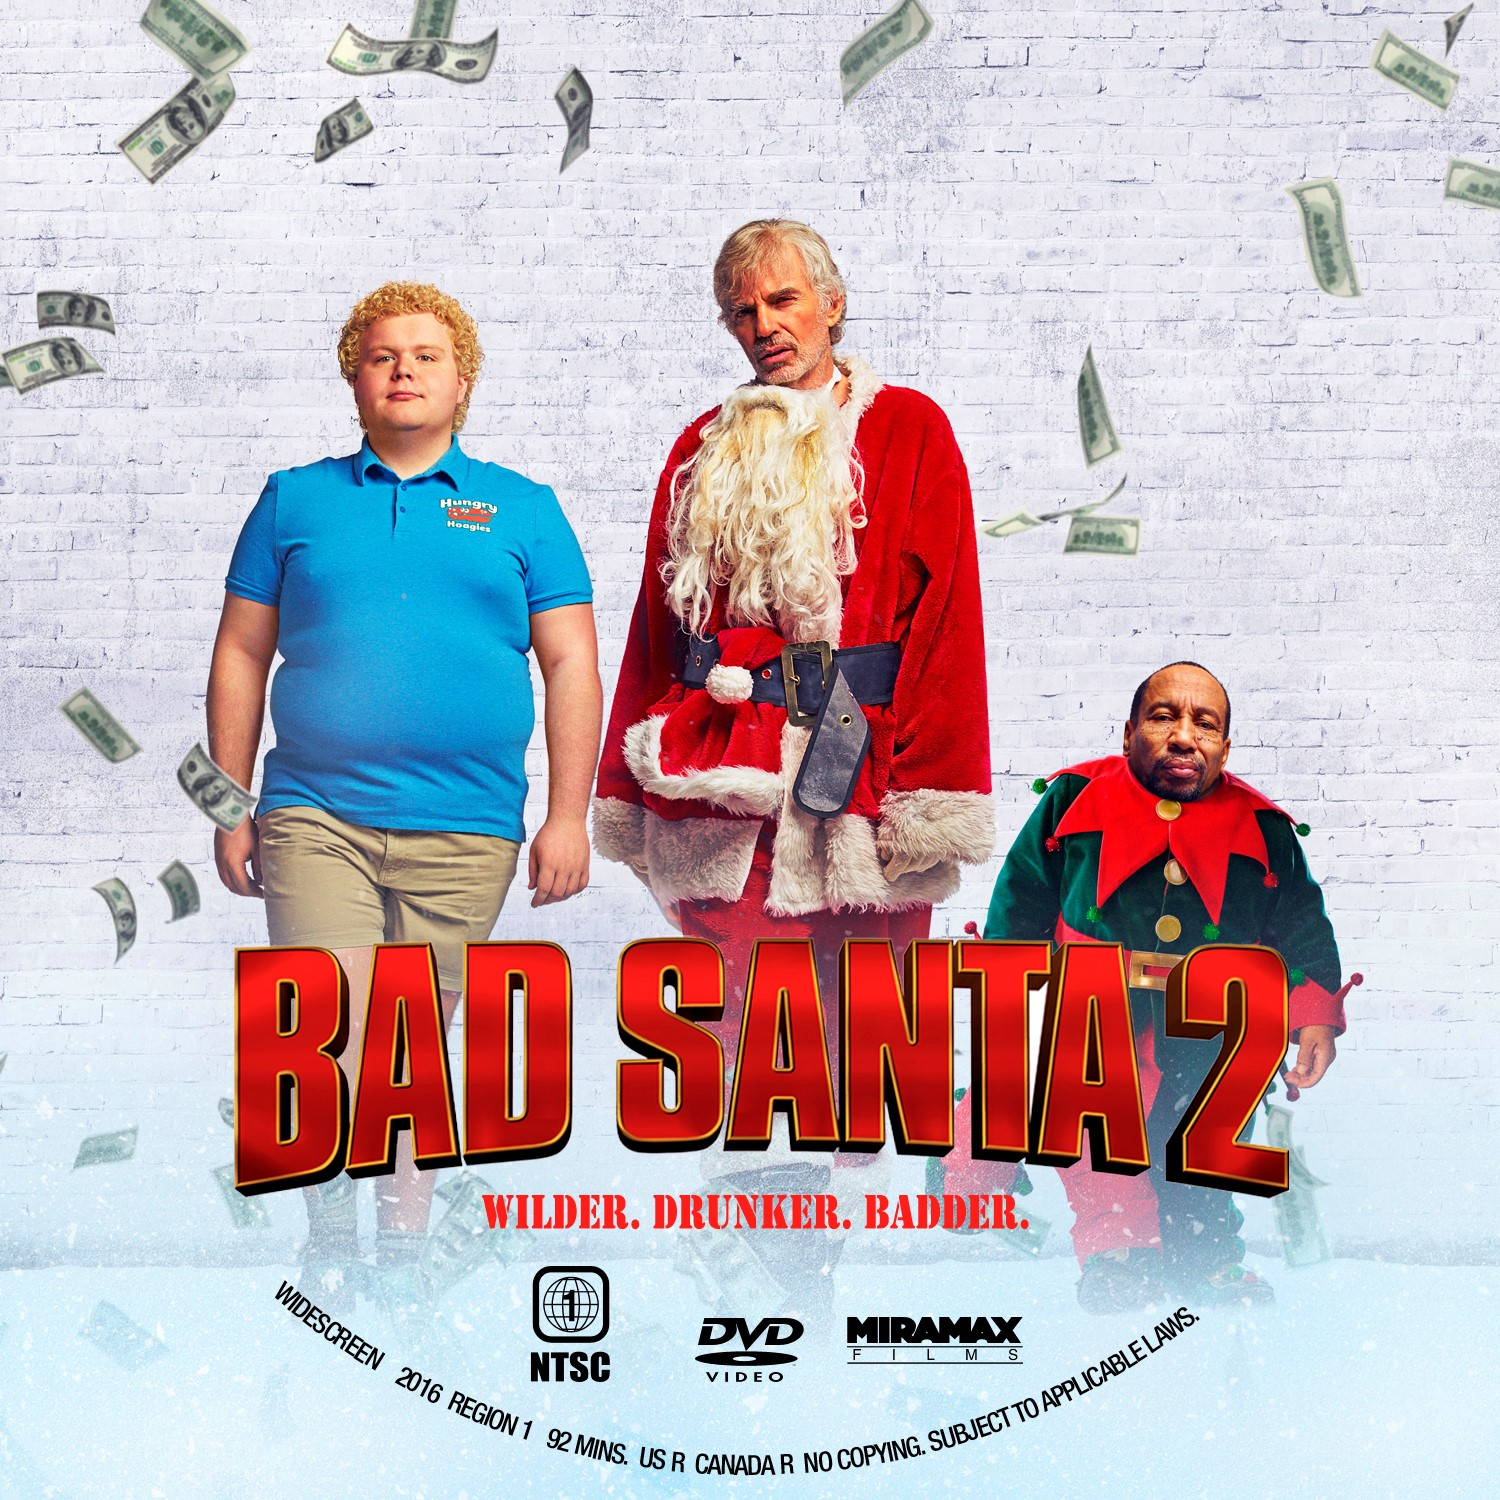 Bad Santa 2 Dvd Label Cover Addict Free Dvd Bluray Covers And Movie Posters